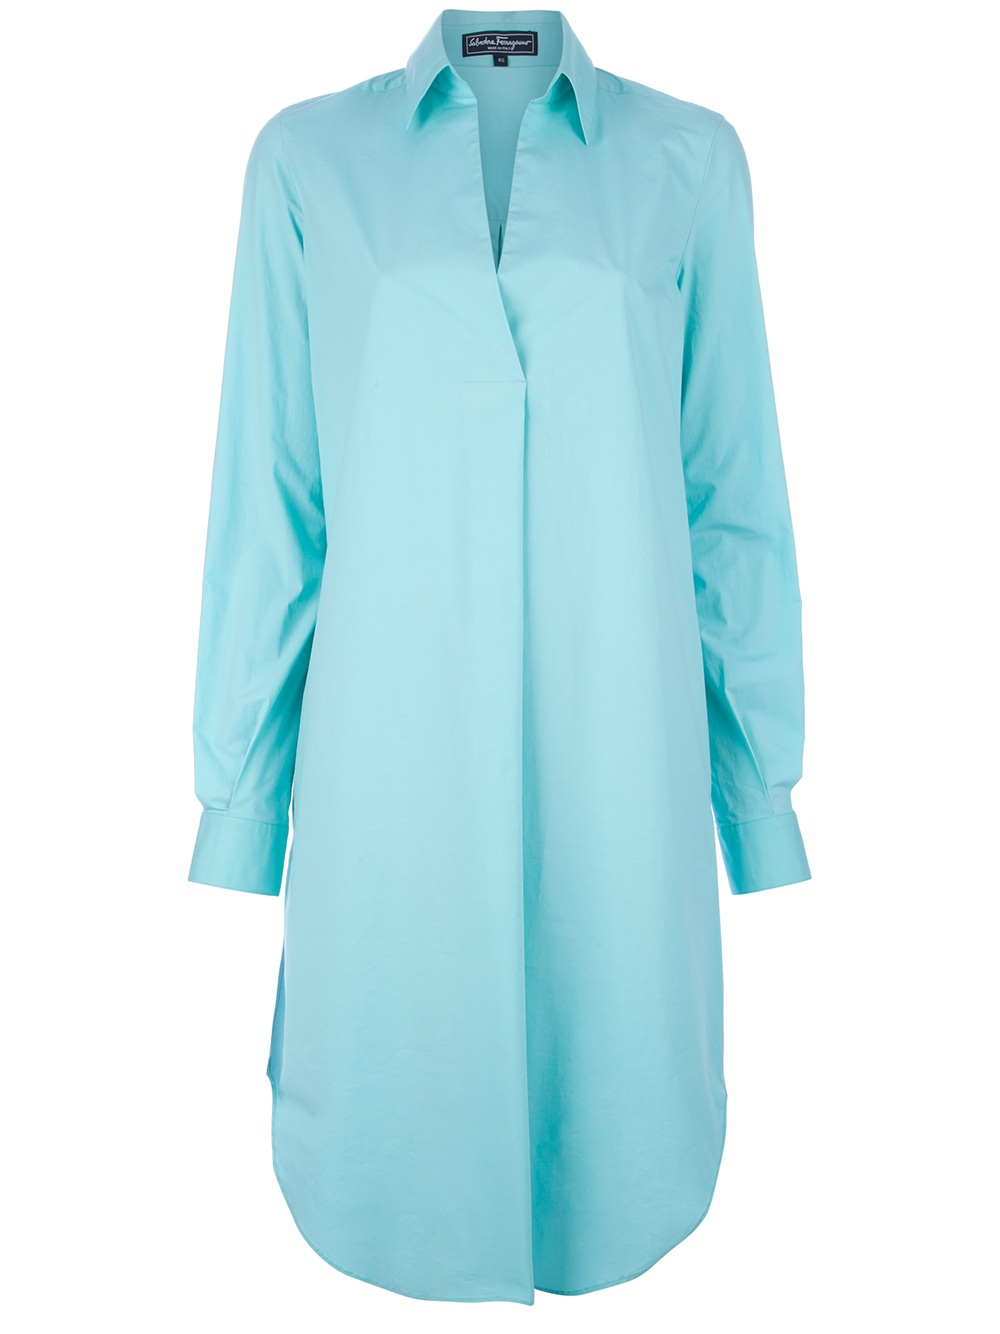 Ferragamo Oversized Shirt Dress in Blue  Lyst